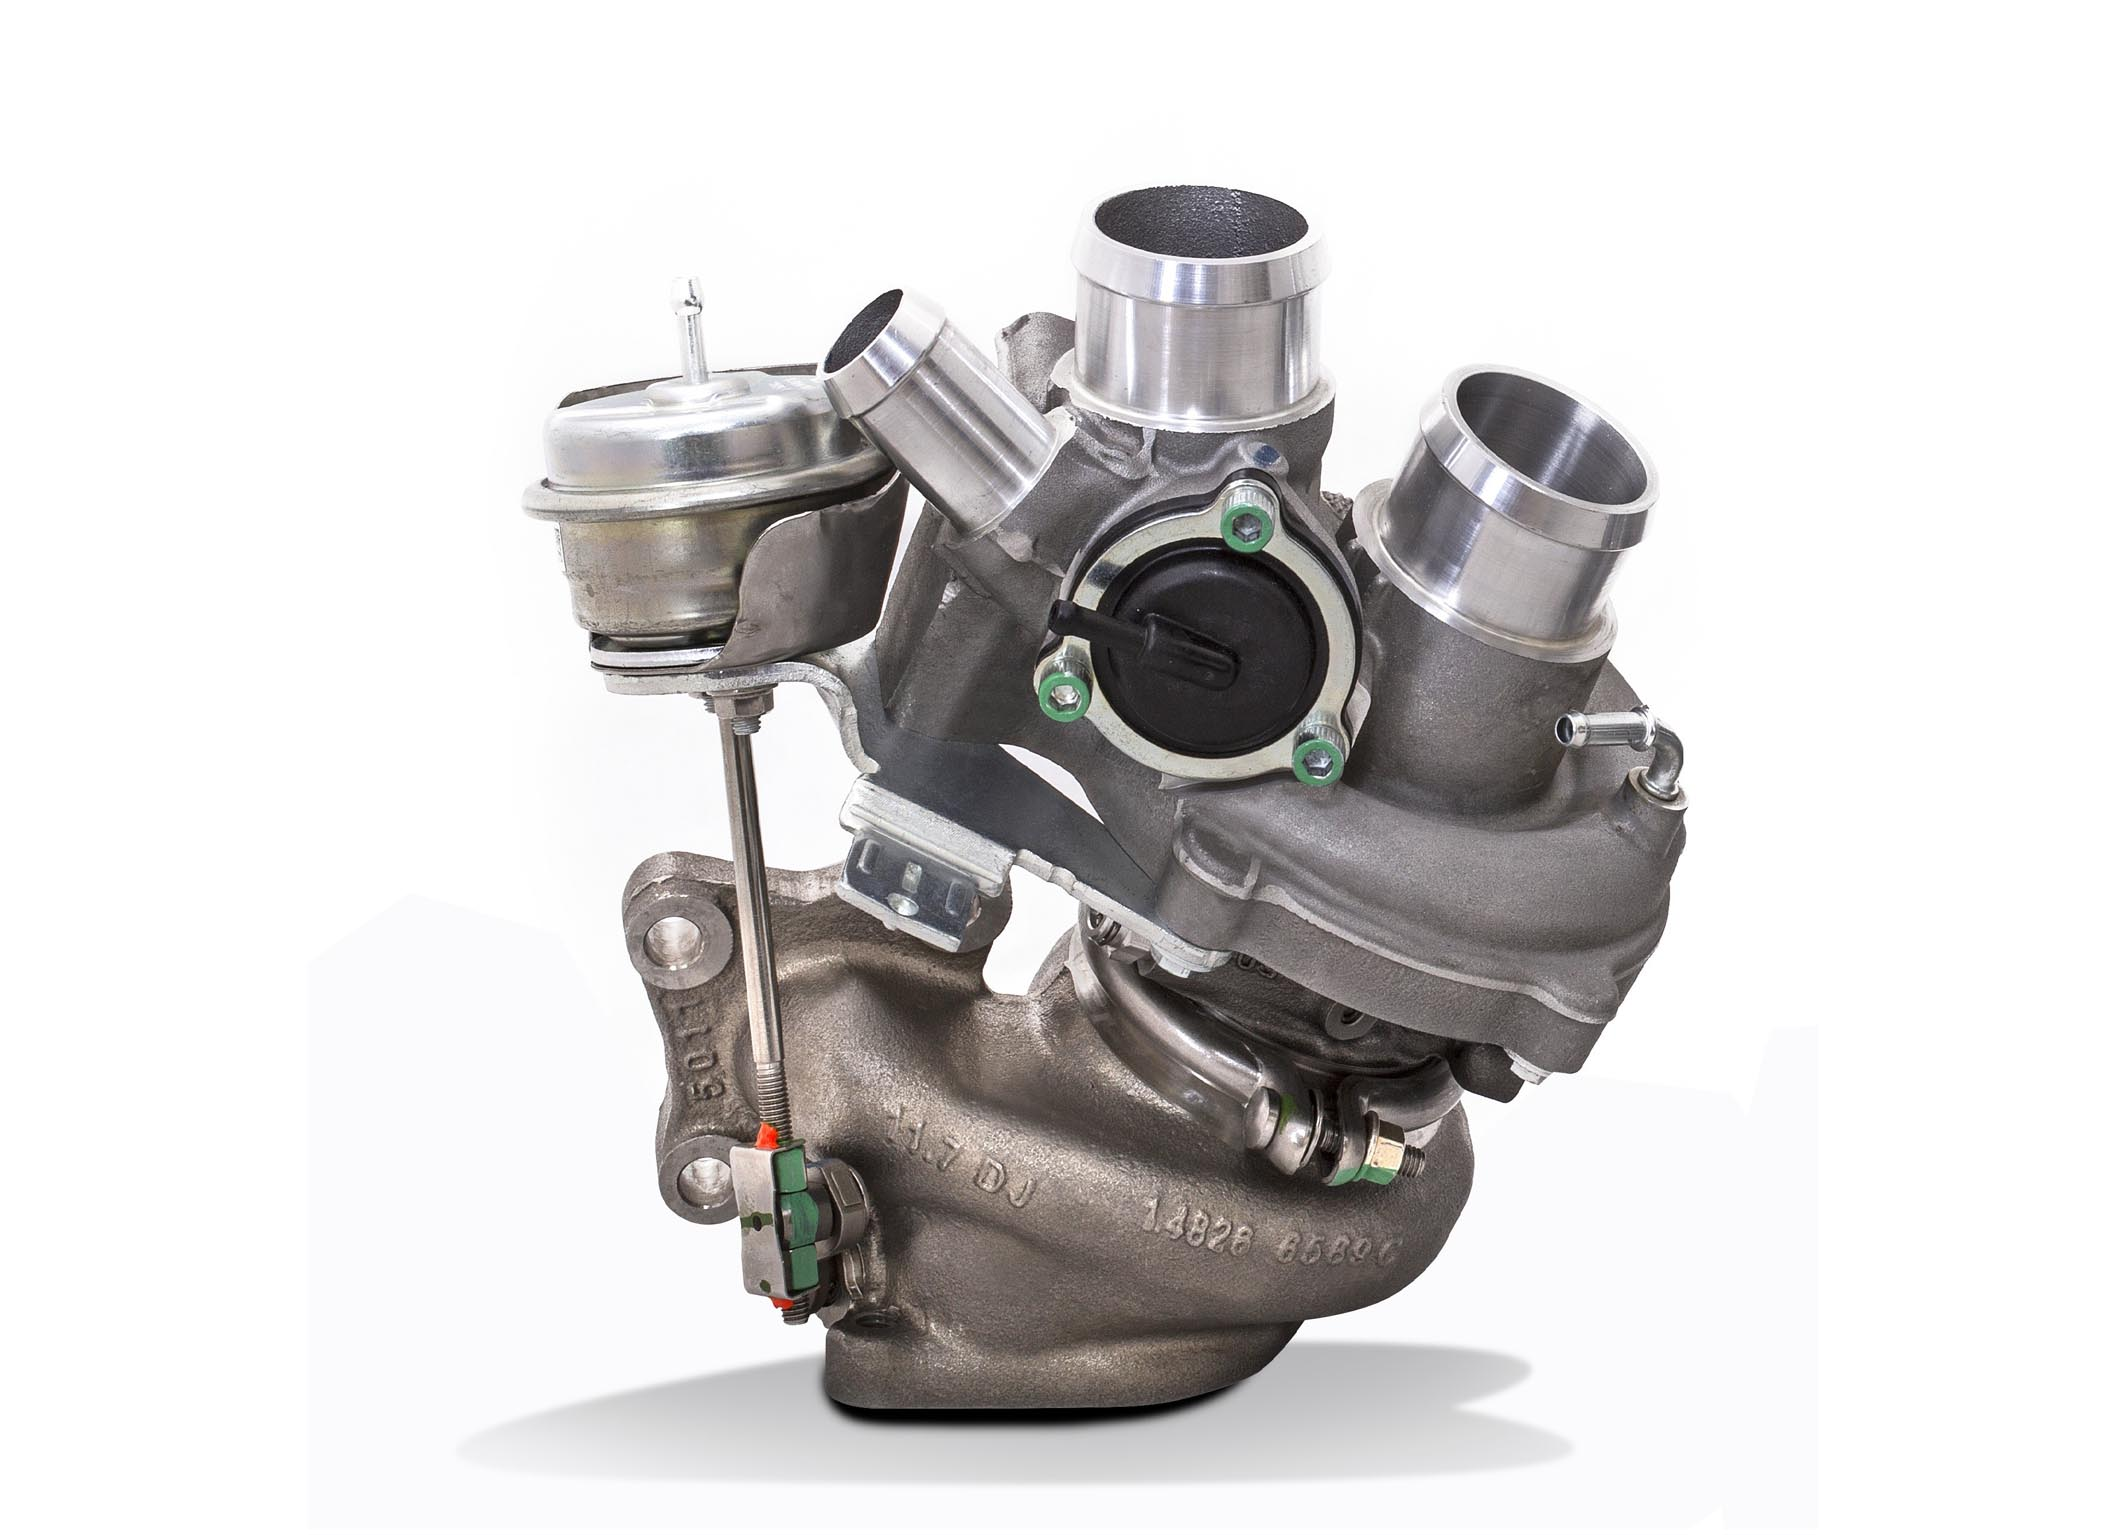 Upgrade Turbocharger for 3.5-liter EcoBoost engine BW-00640